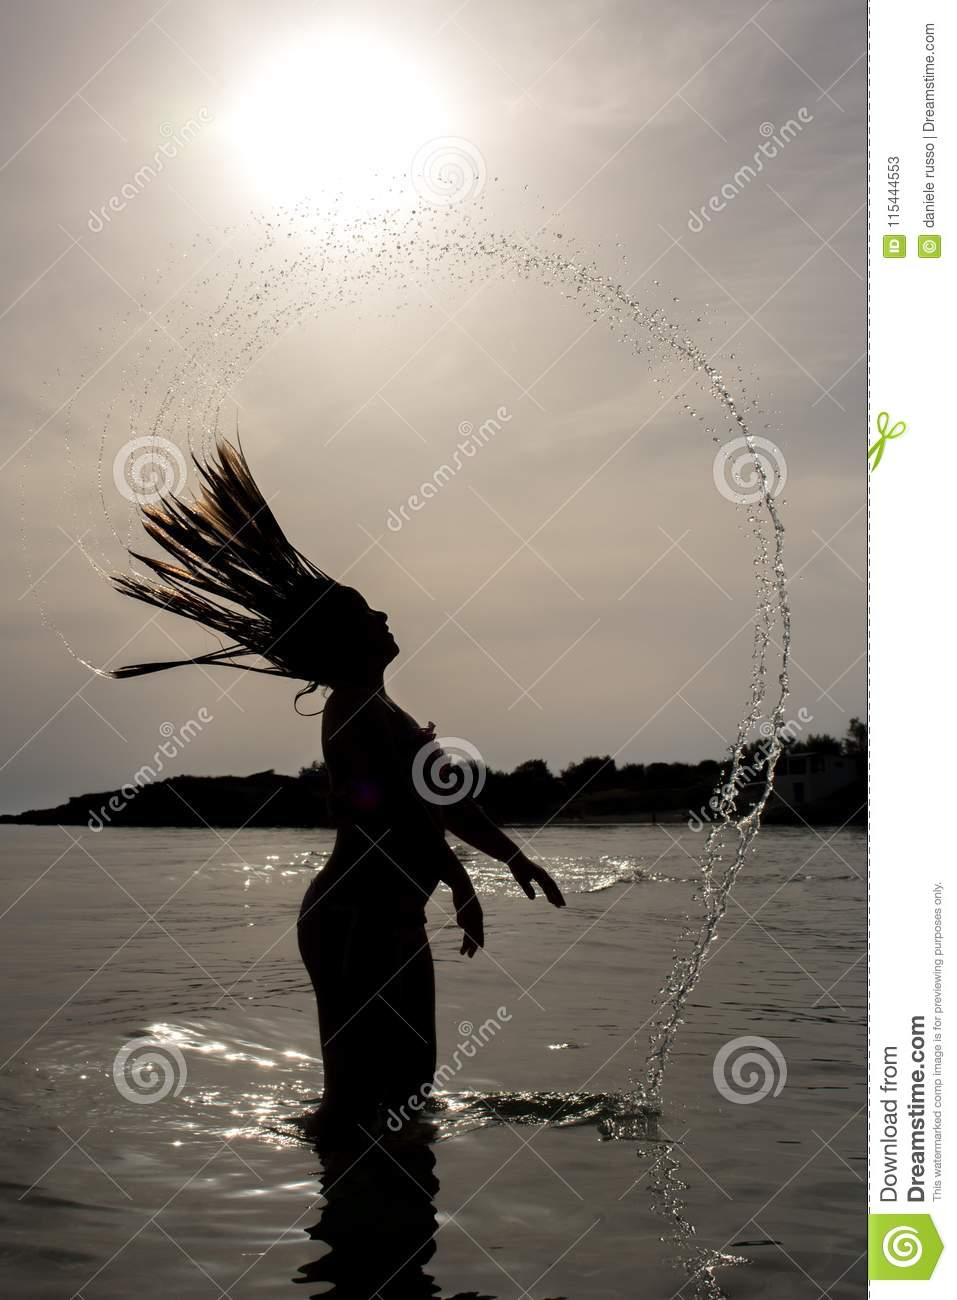 Vertical View of a Silhouette of a Young Girl Splashing the Water with Hair in the Sea on Sun Backlight in a Foggy Day